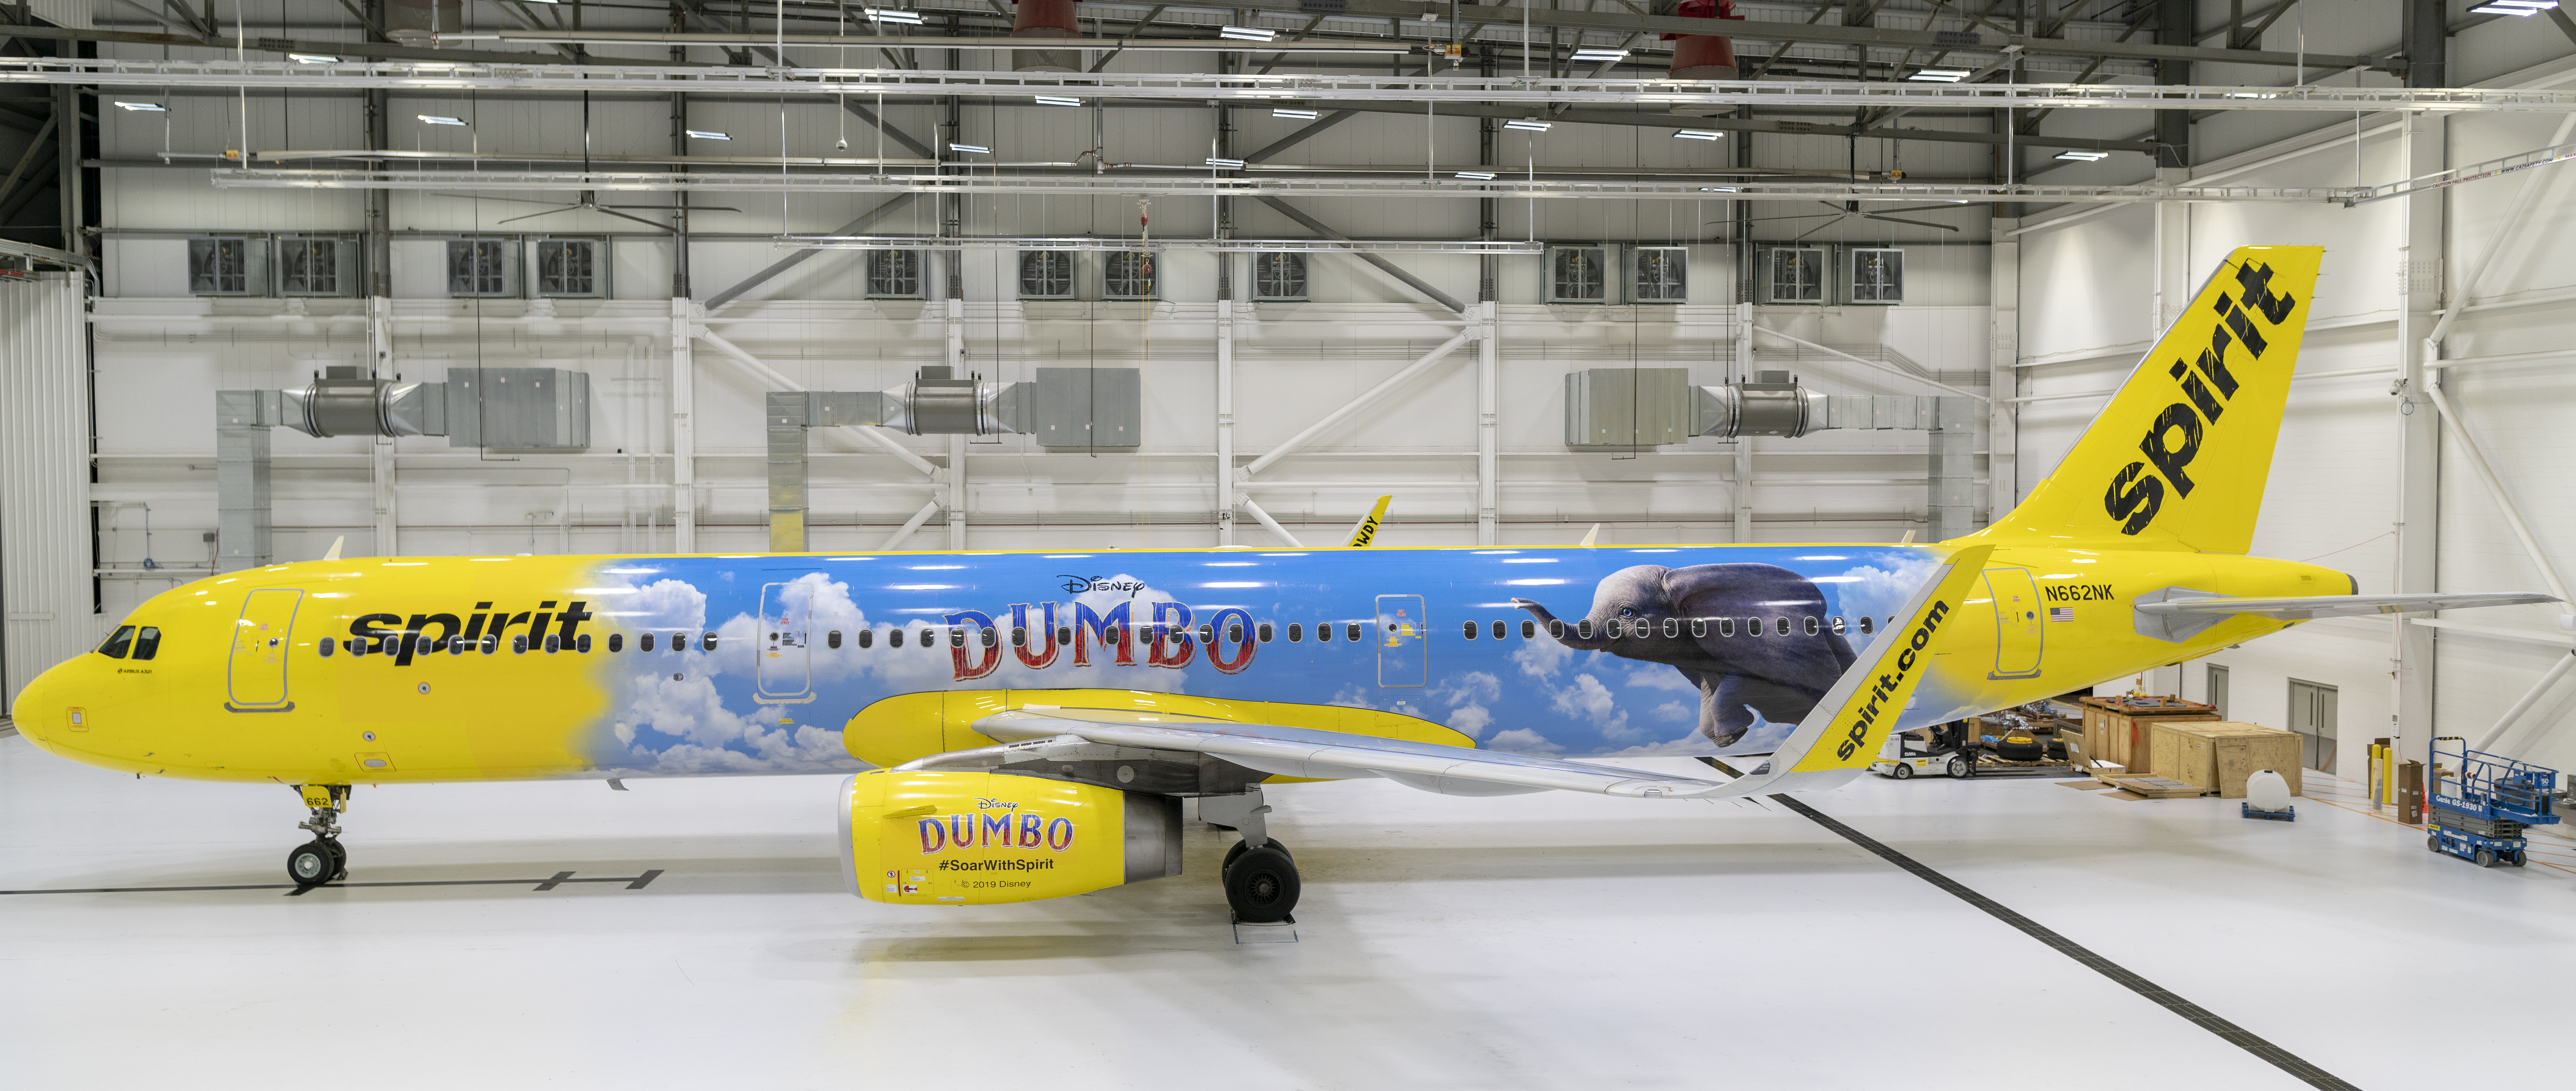 "Spirit Airlines A321 Featuring Disney's ""Dumbo"""